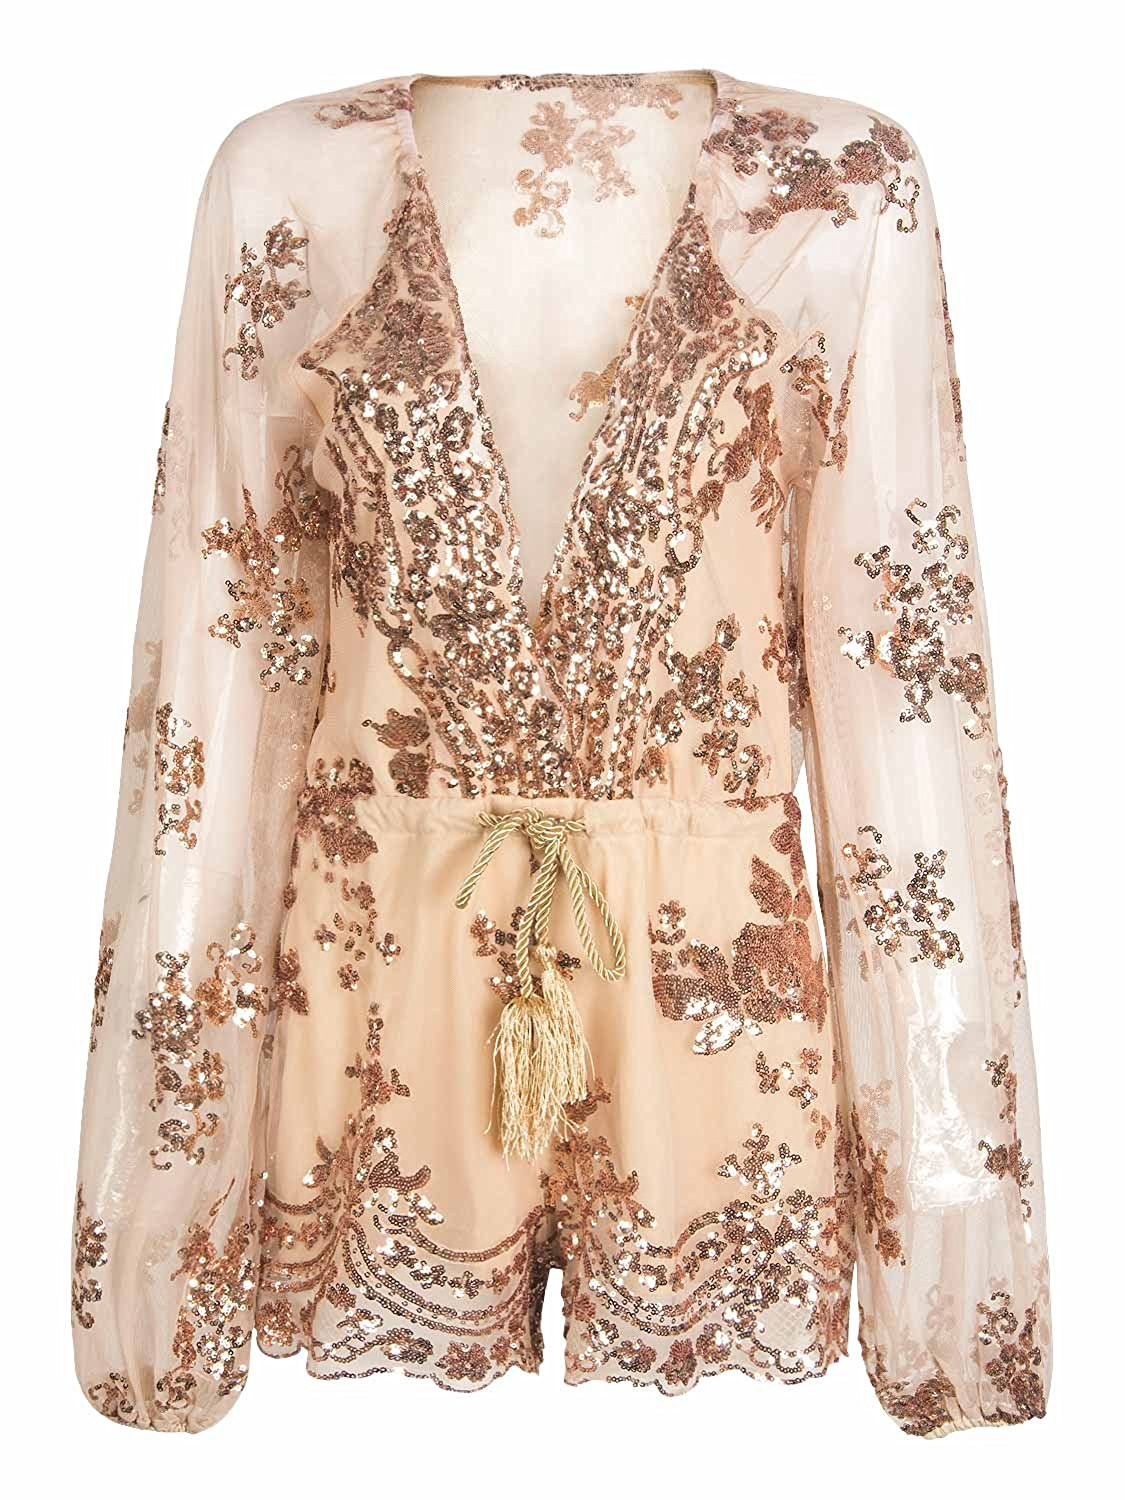 48d3f8b05d Get Quotations · Choies Women Gold Plunge Neck Drawstring See Through Romper  Sequin Party Playsuit